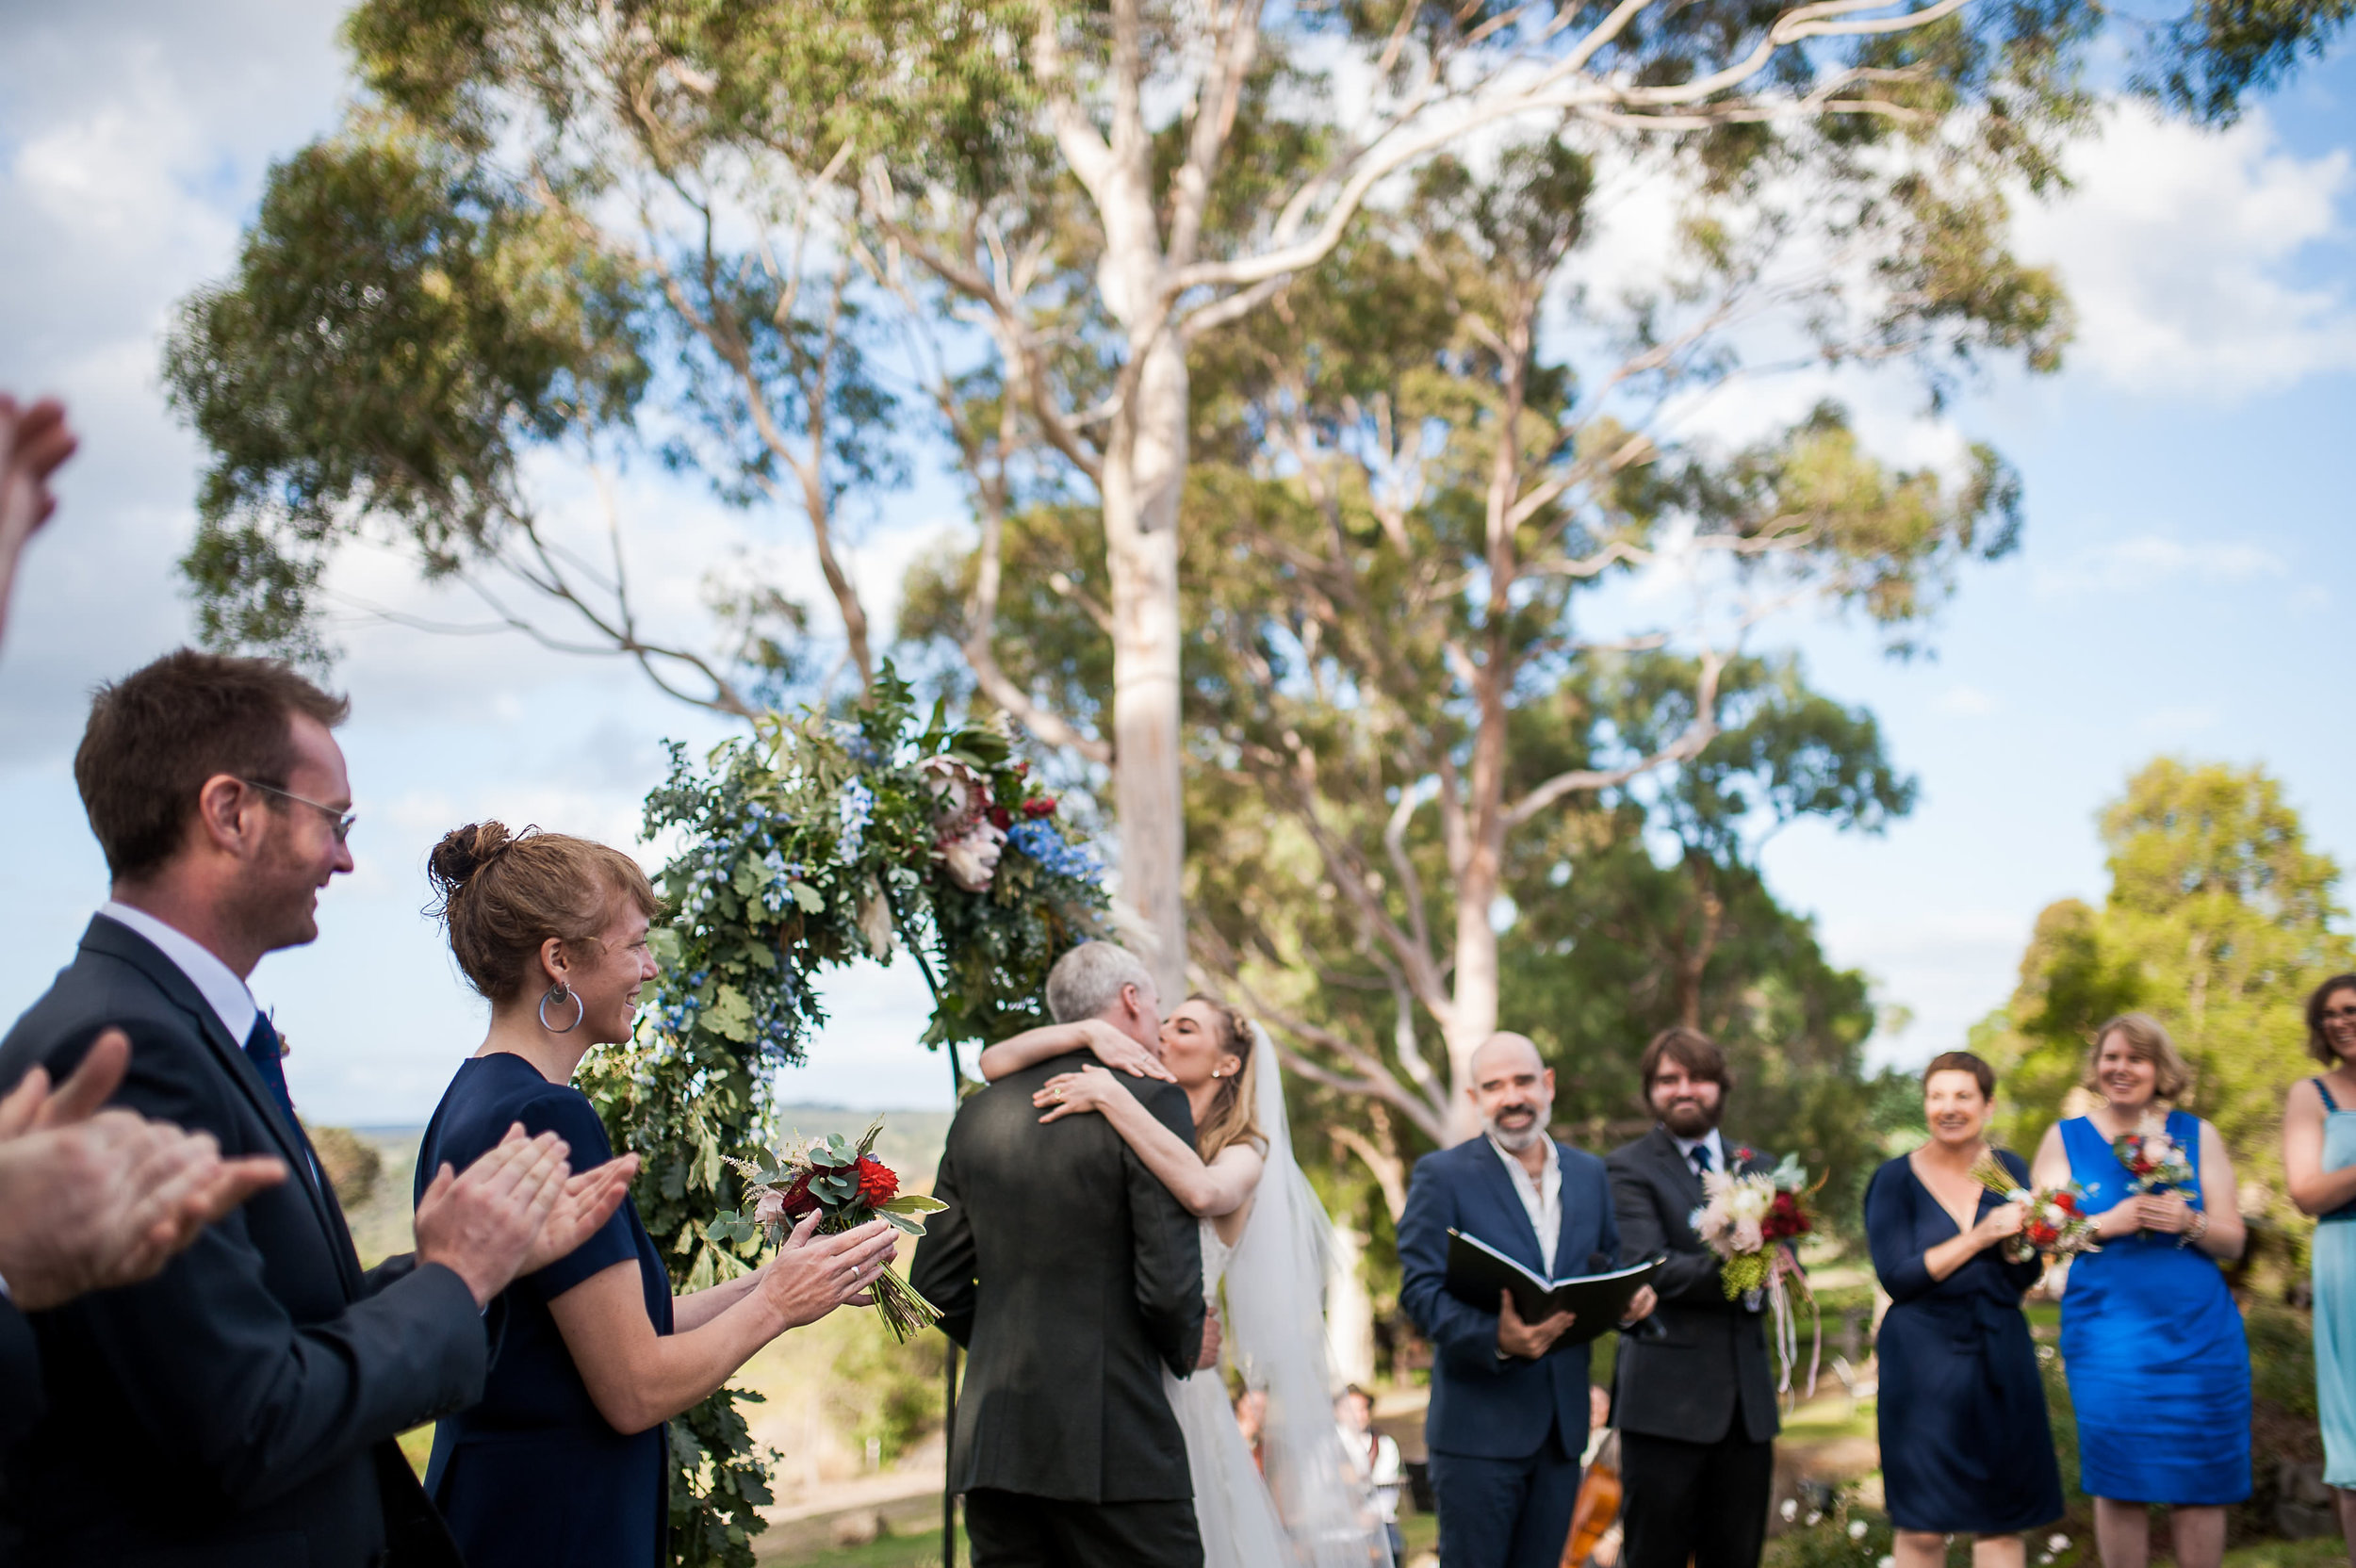 Melbourne wedding photography and videography by Jackie Dixon